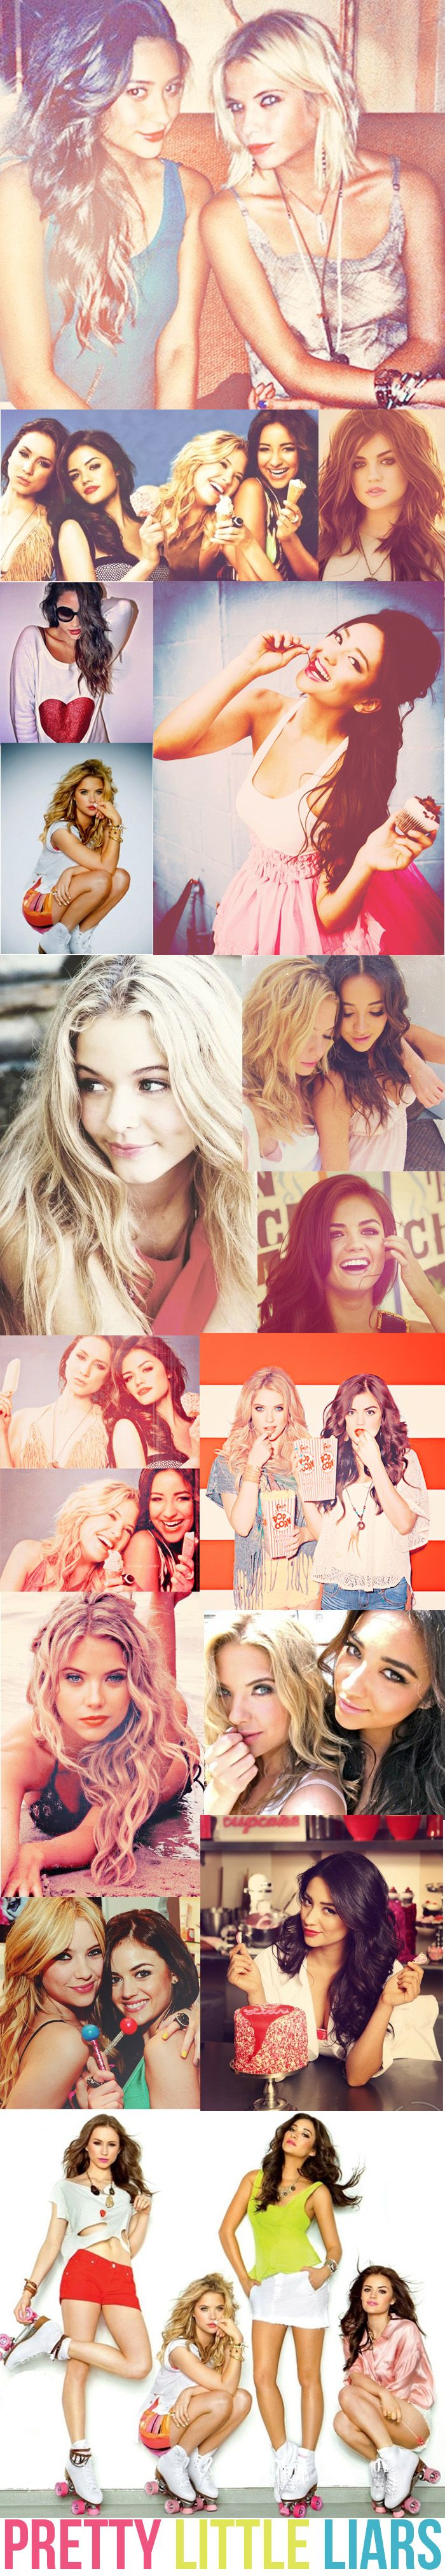 Ashley Benson (Hannah Marin), Lucy Hale ( Aria Montgomery), Shay Mitchell (Emily Fields), Troian Bellisario (Spencer Hastings) and Sasha Pieterse (Alison DiLaurentis) - Pretty Little Liars #PLL